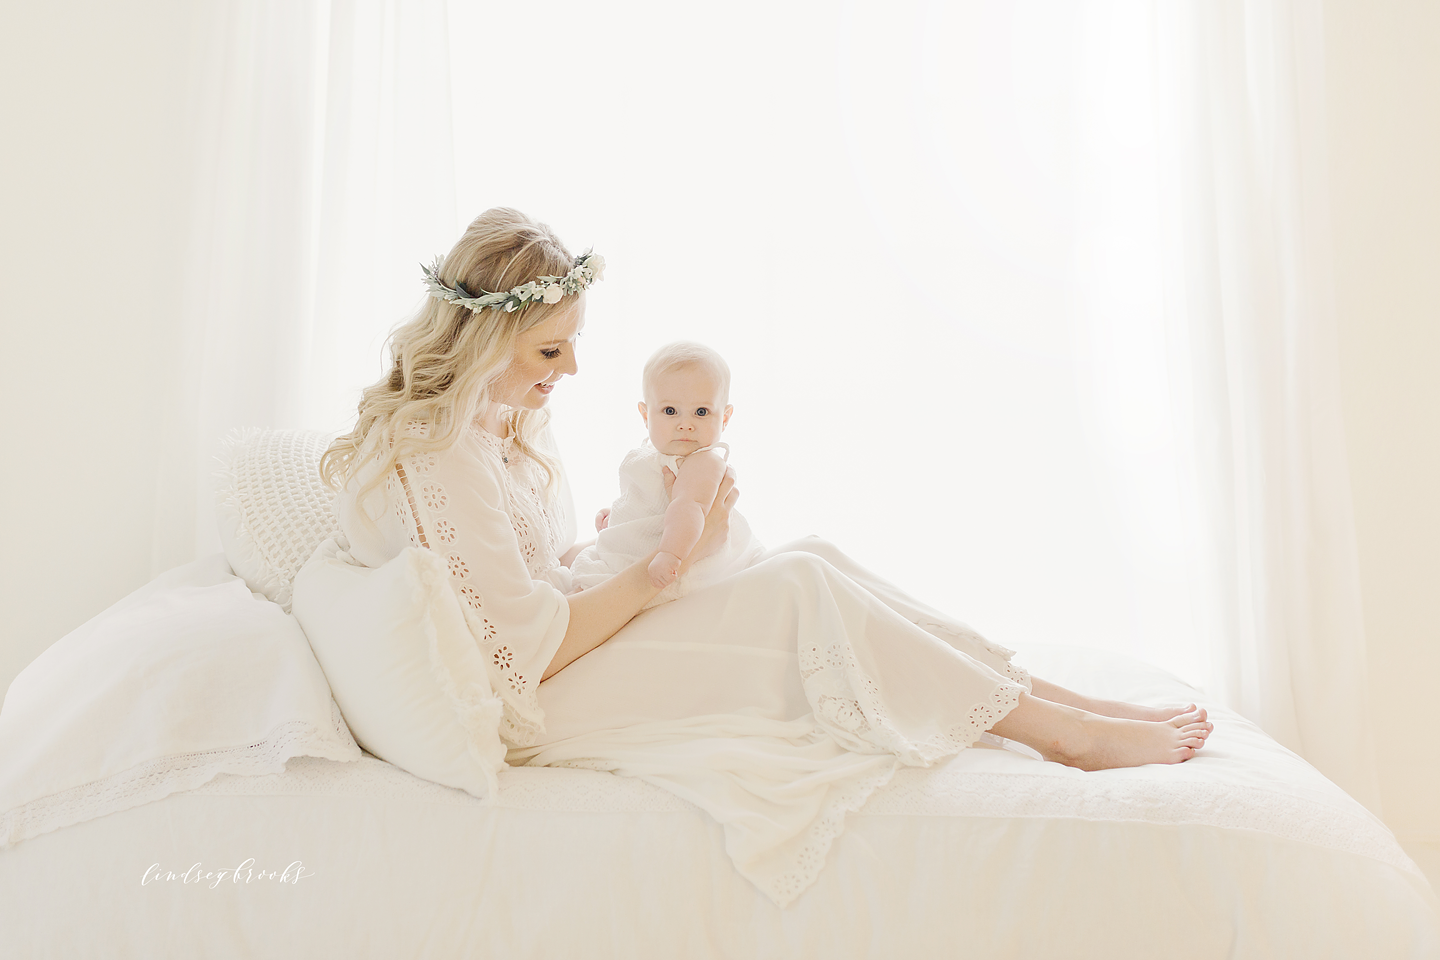 oklahoma_city_okc_mommy_and_me_motherhood_photographer_baby_child_flower_crown_halo_six_months_organic_simple_photos_8.png